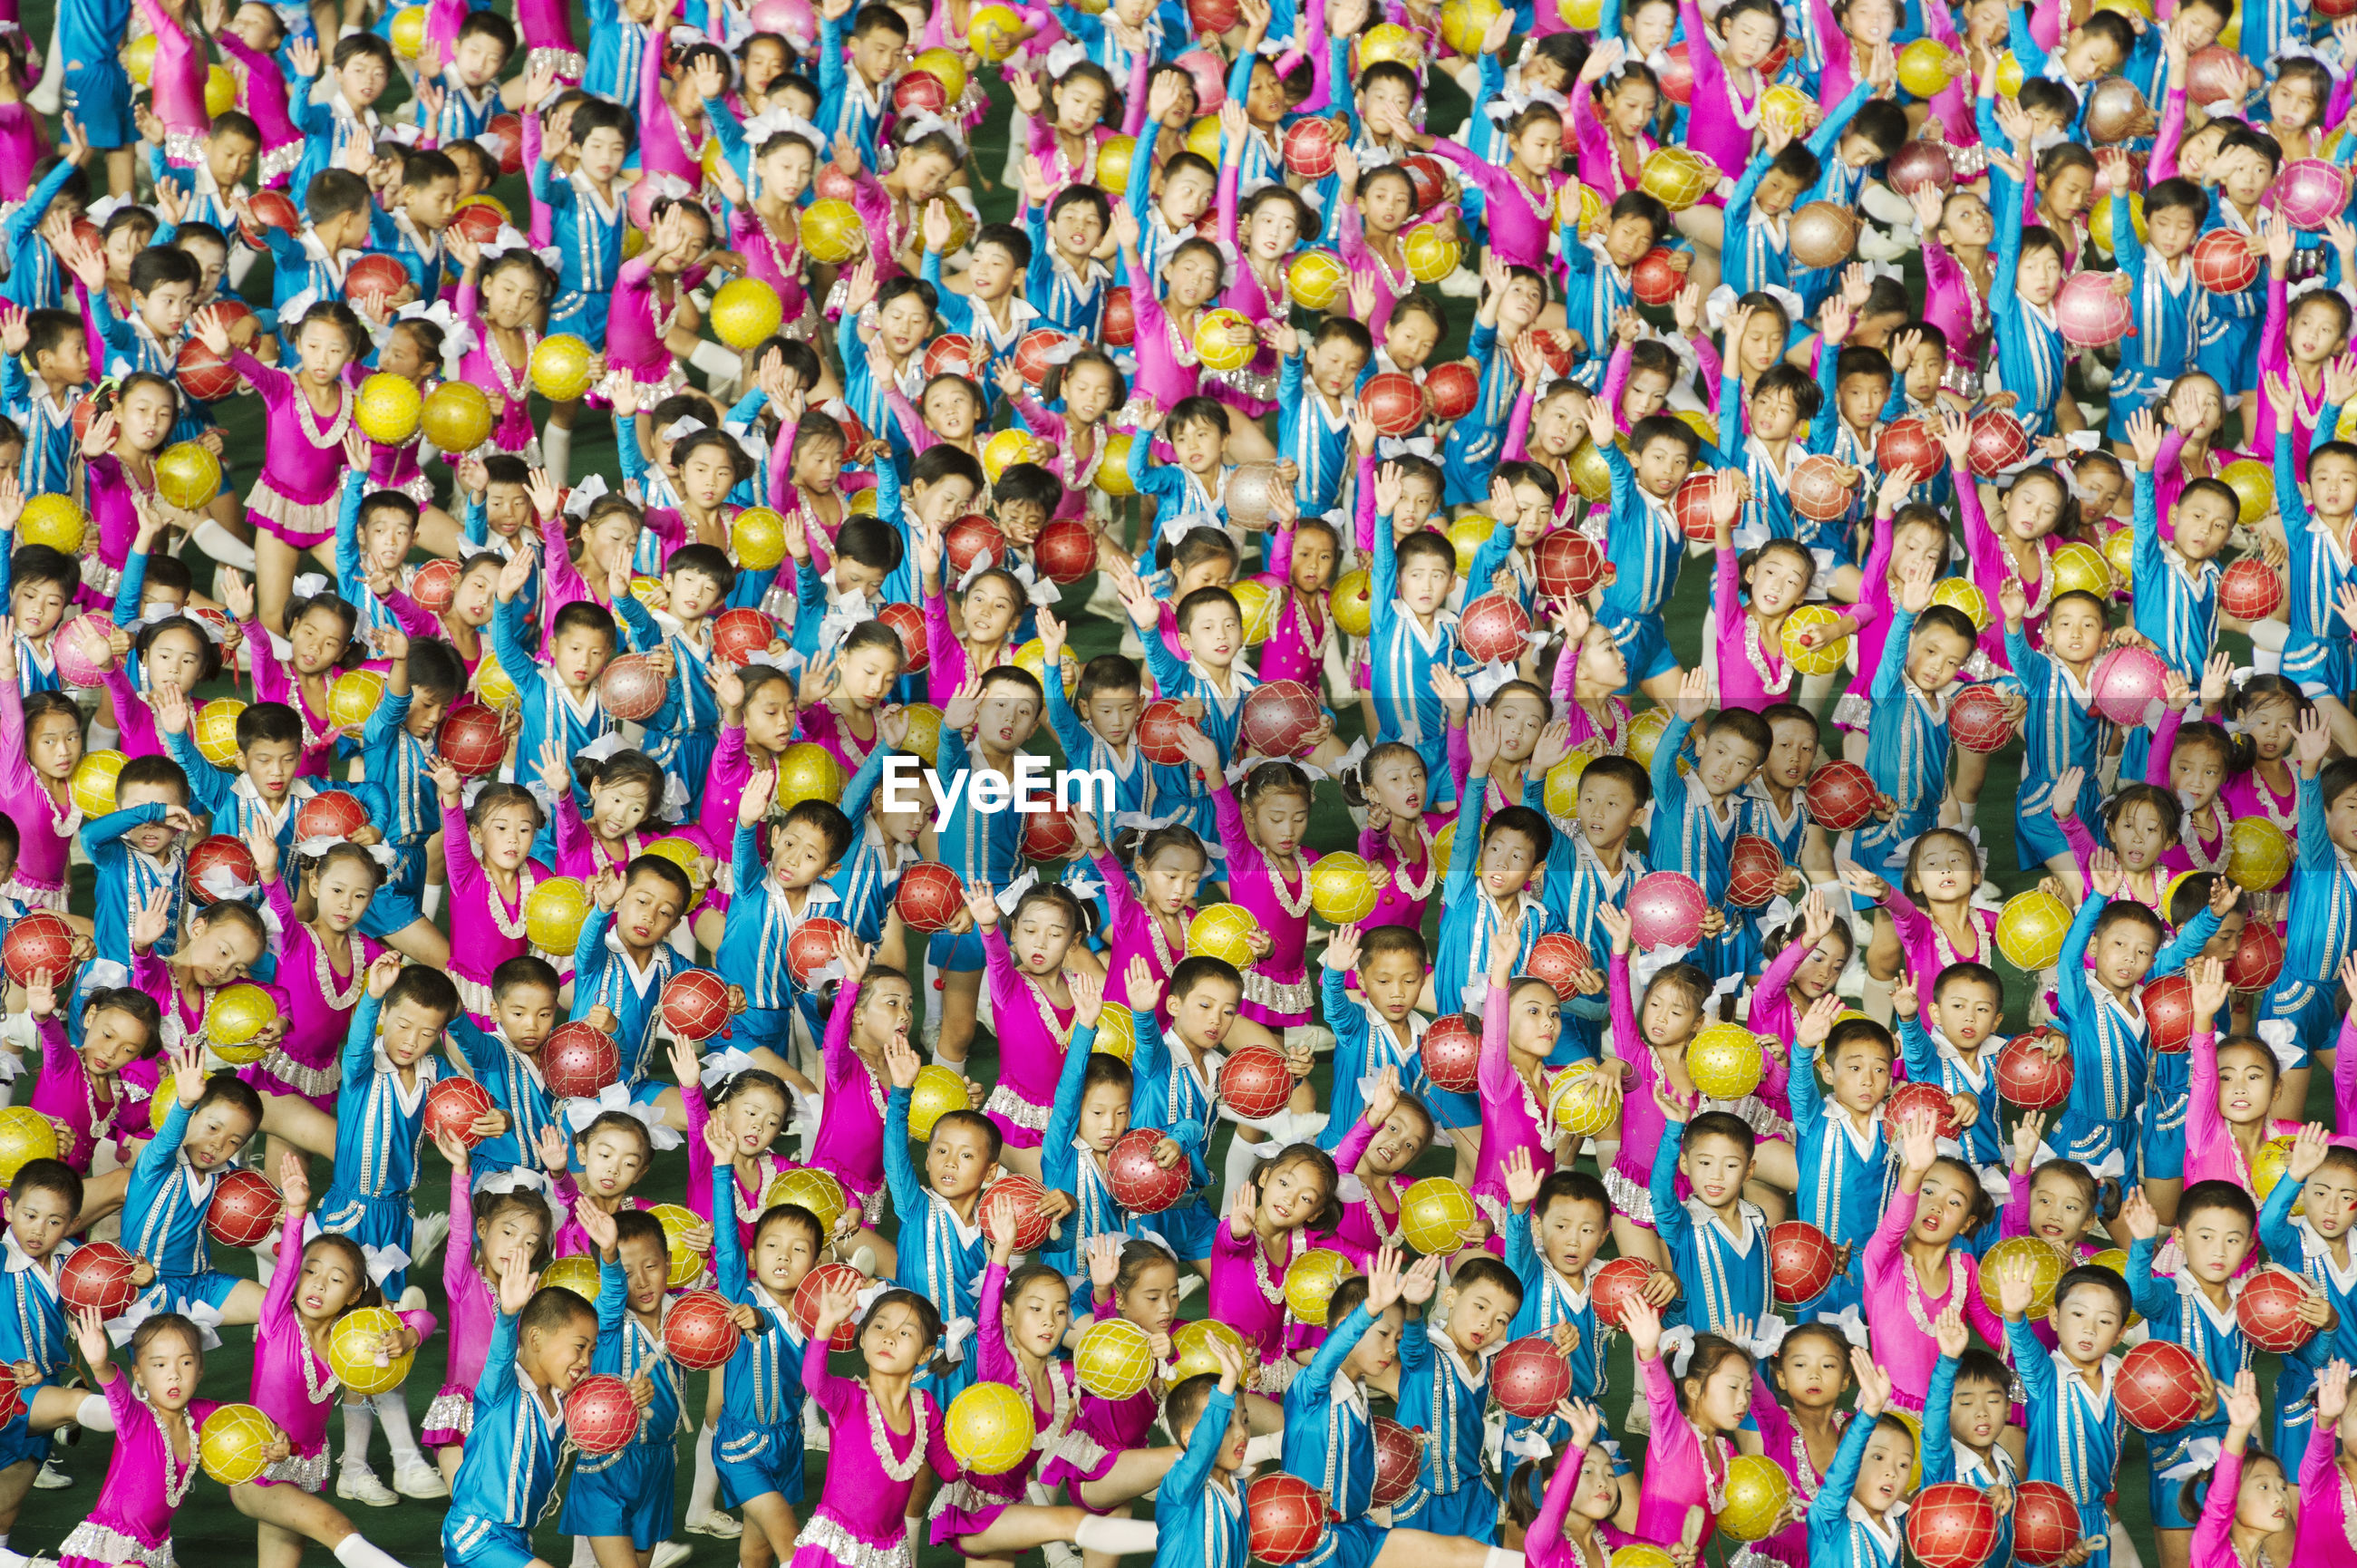 HIGH ANGLE VIEW OF PEOPLE ON COLORFUL WALL